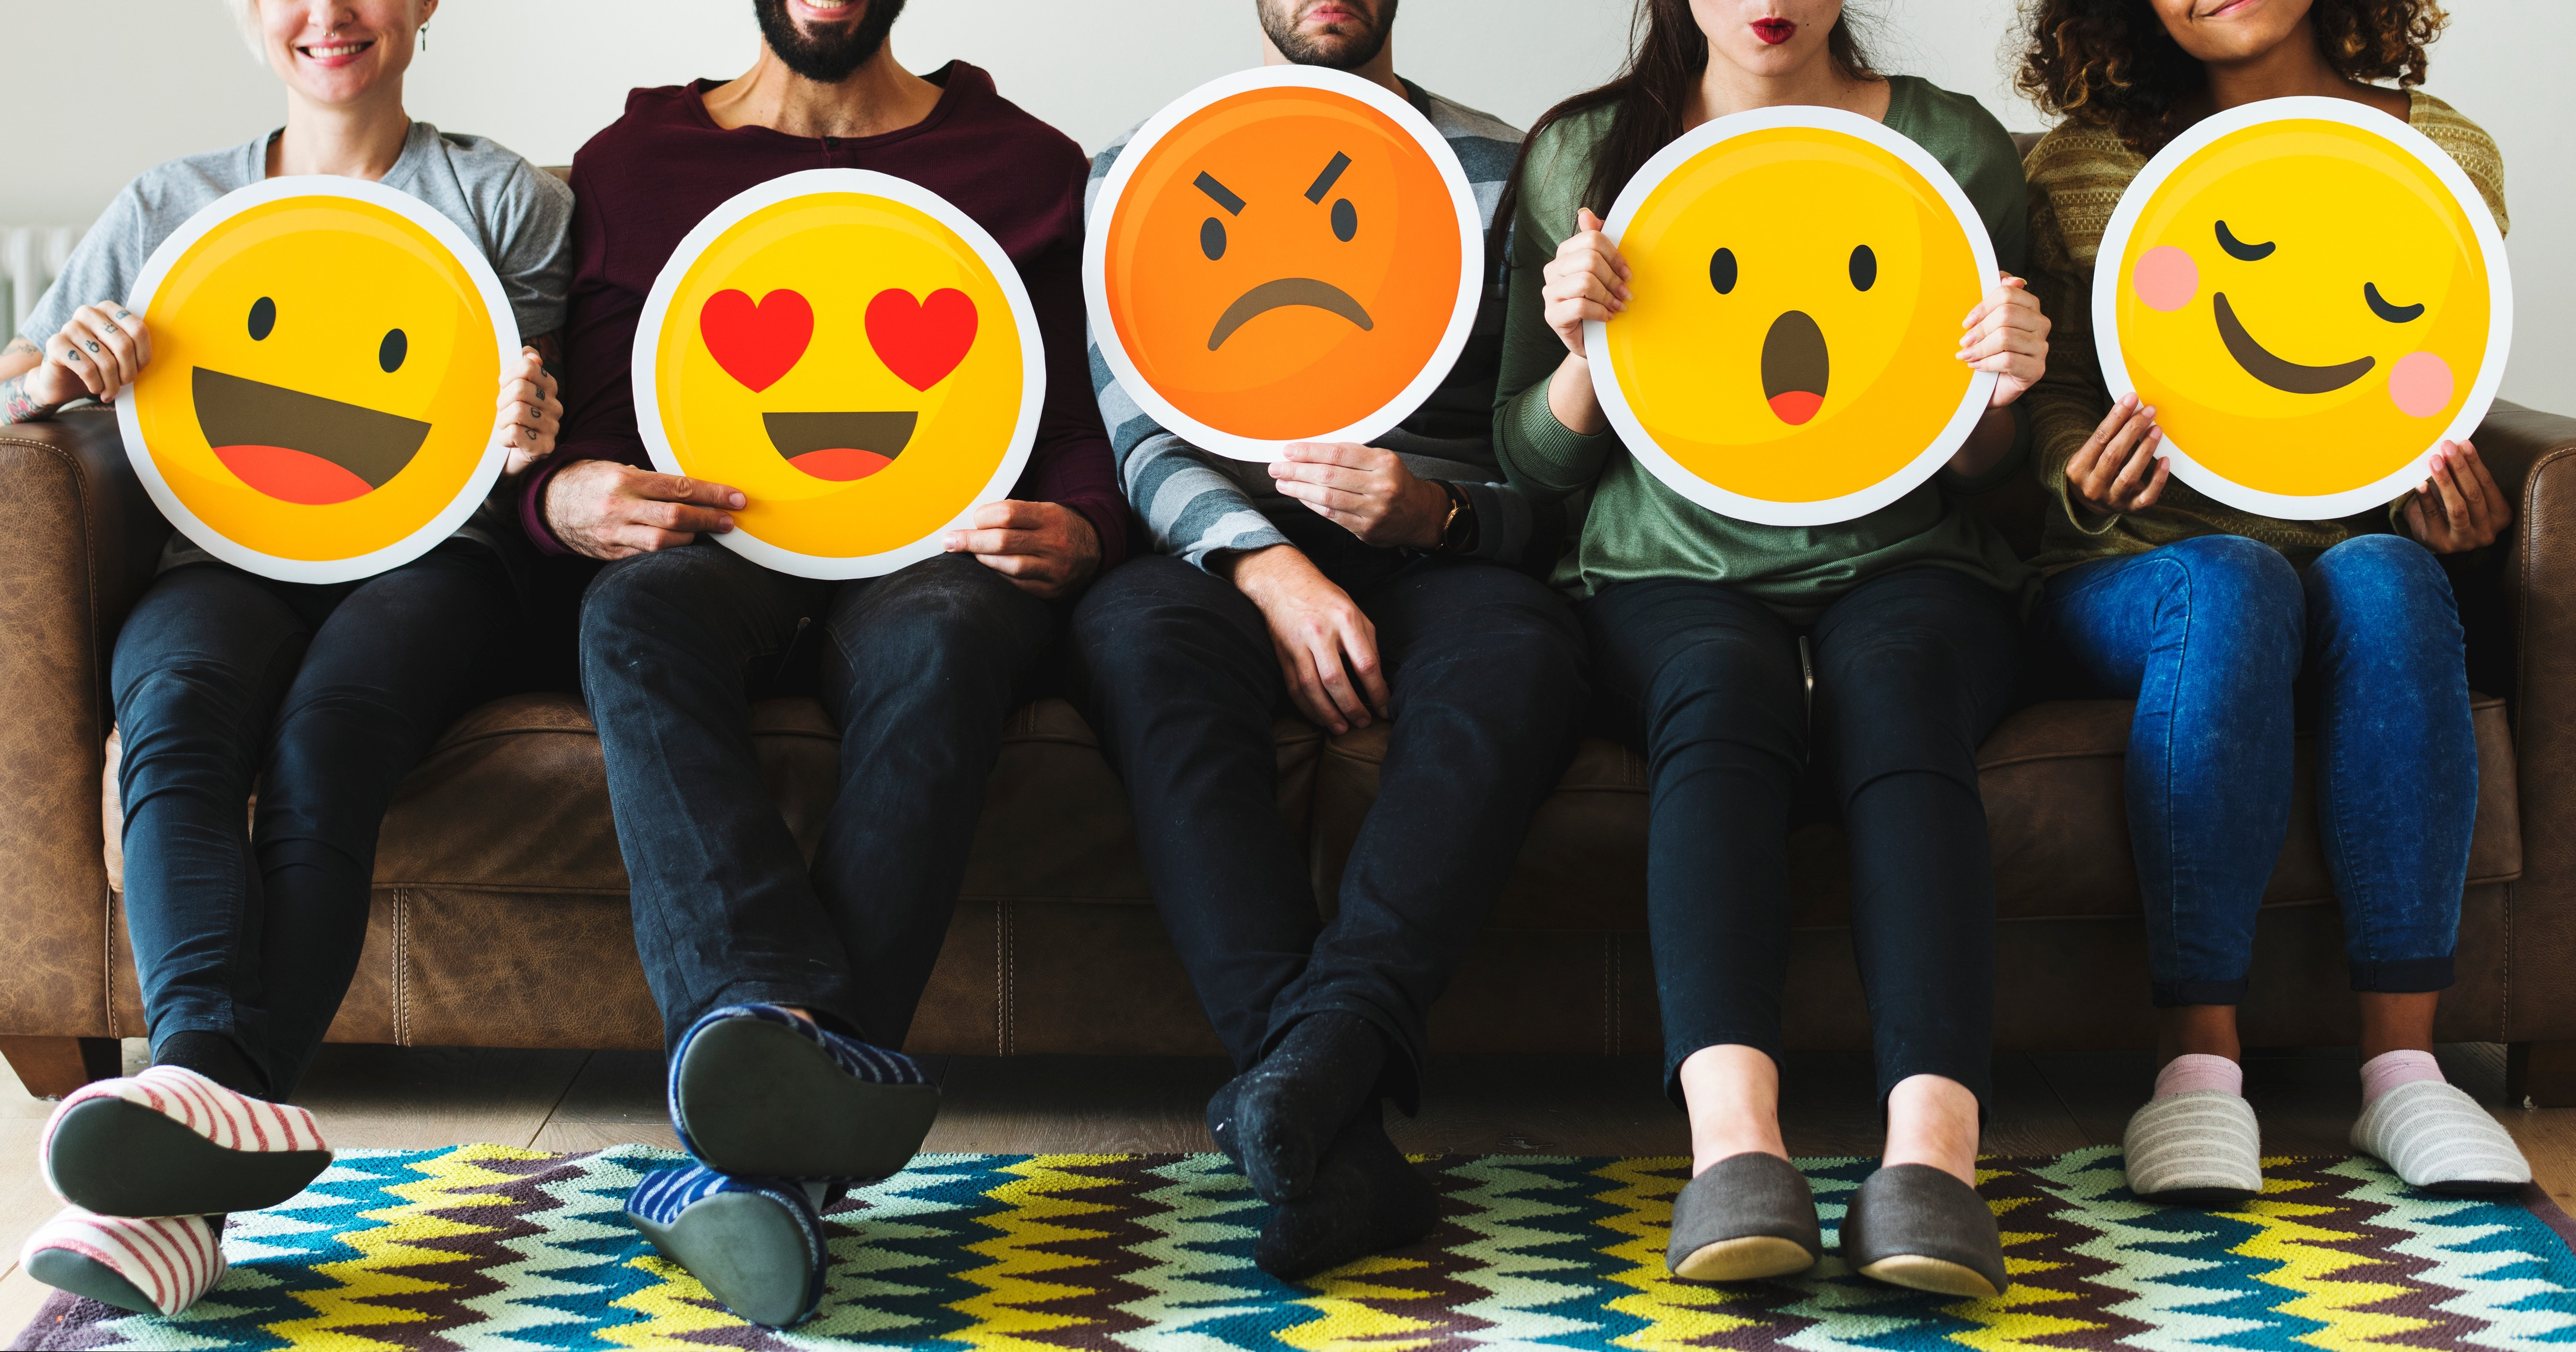 """shutterstock 1052394878 - Brand Storytelling with Emojis - From """"Snackable Content"""" to Independent Stories"""